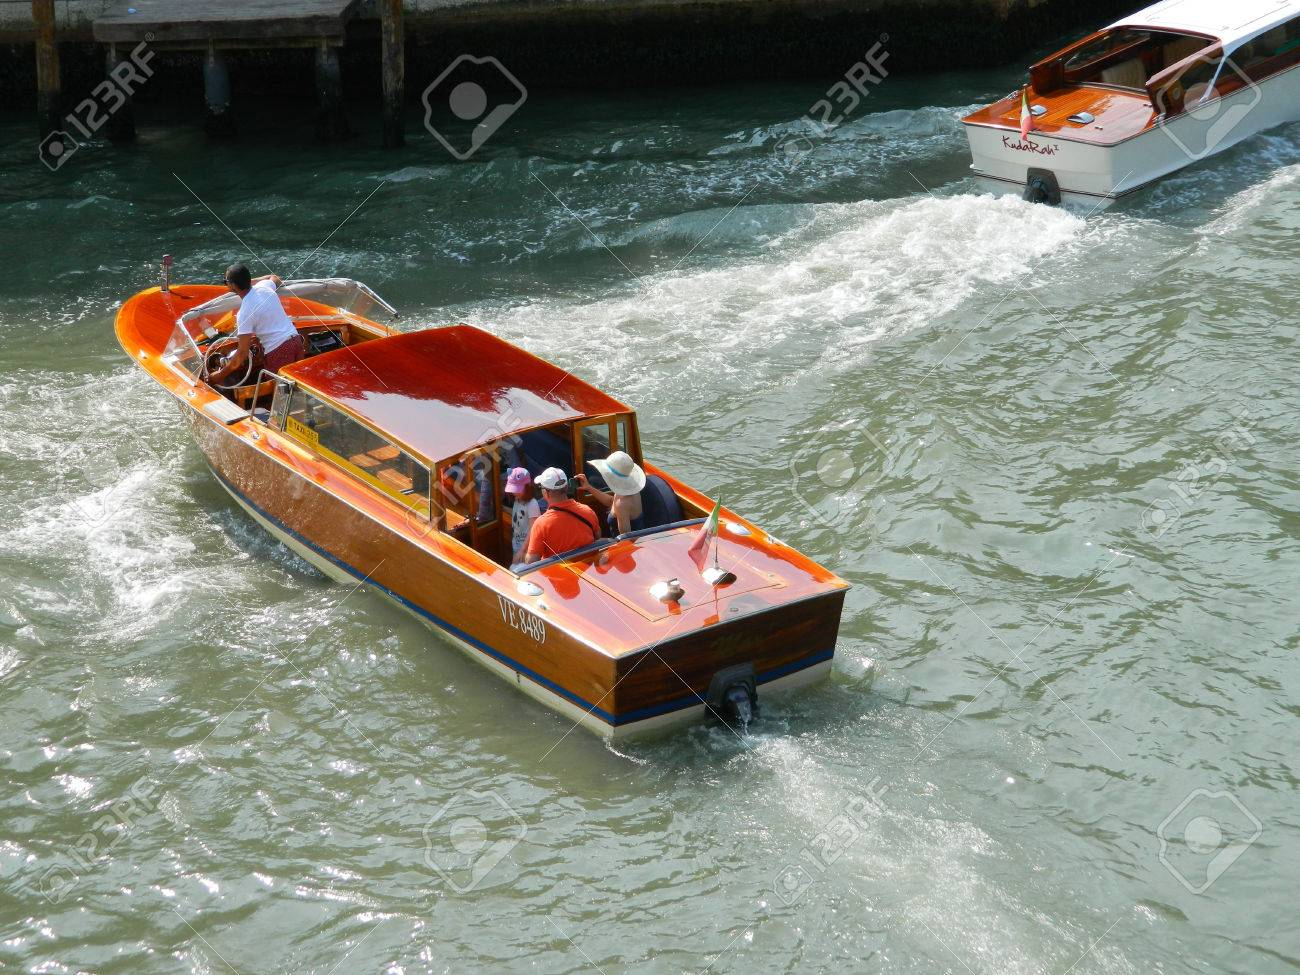 VENICE, ITALY - 6 JULY 2015 Wooden Venice taxi motorboat with passengers water taxi in Grand Canal Stock Photo - 55334623